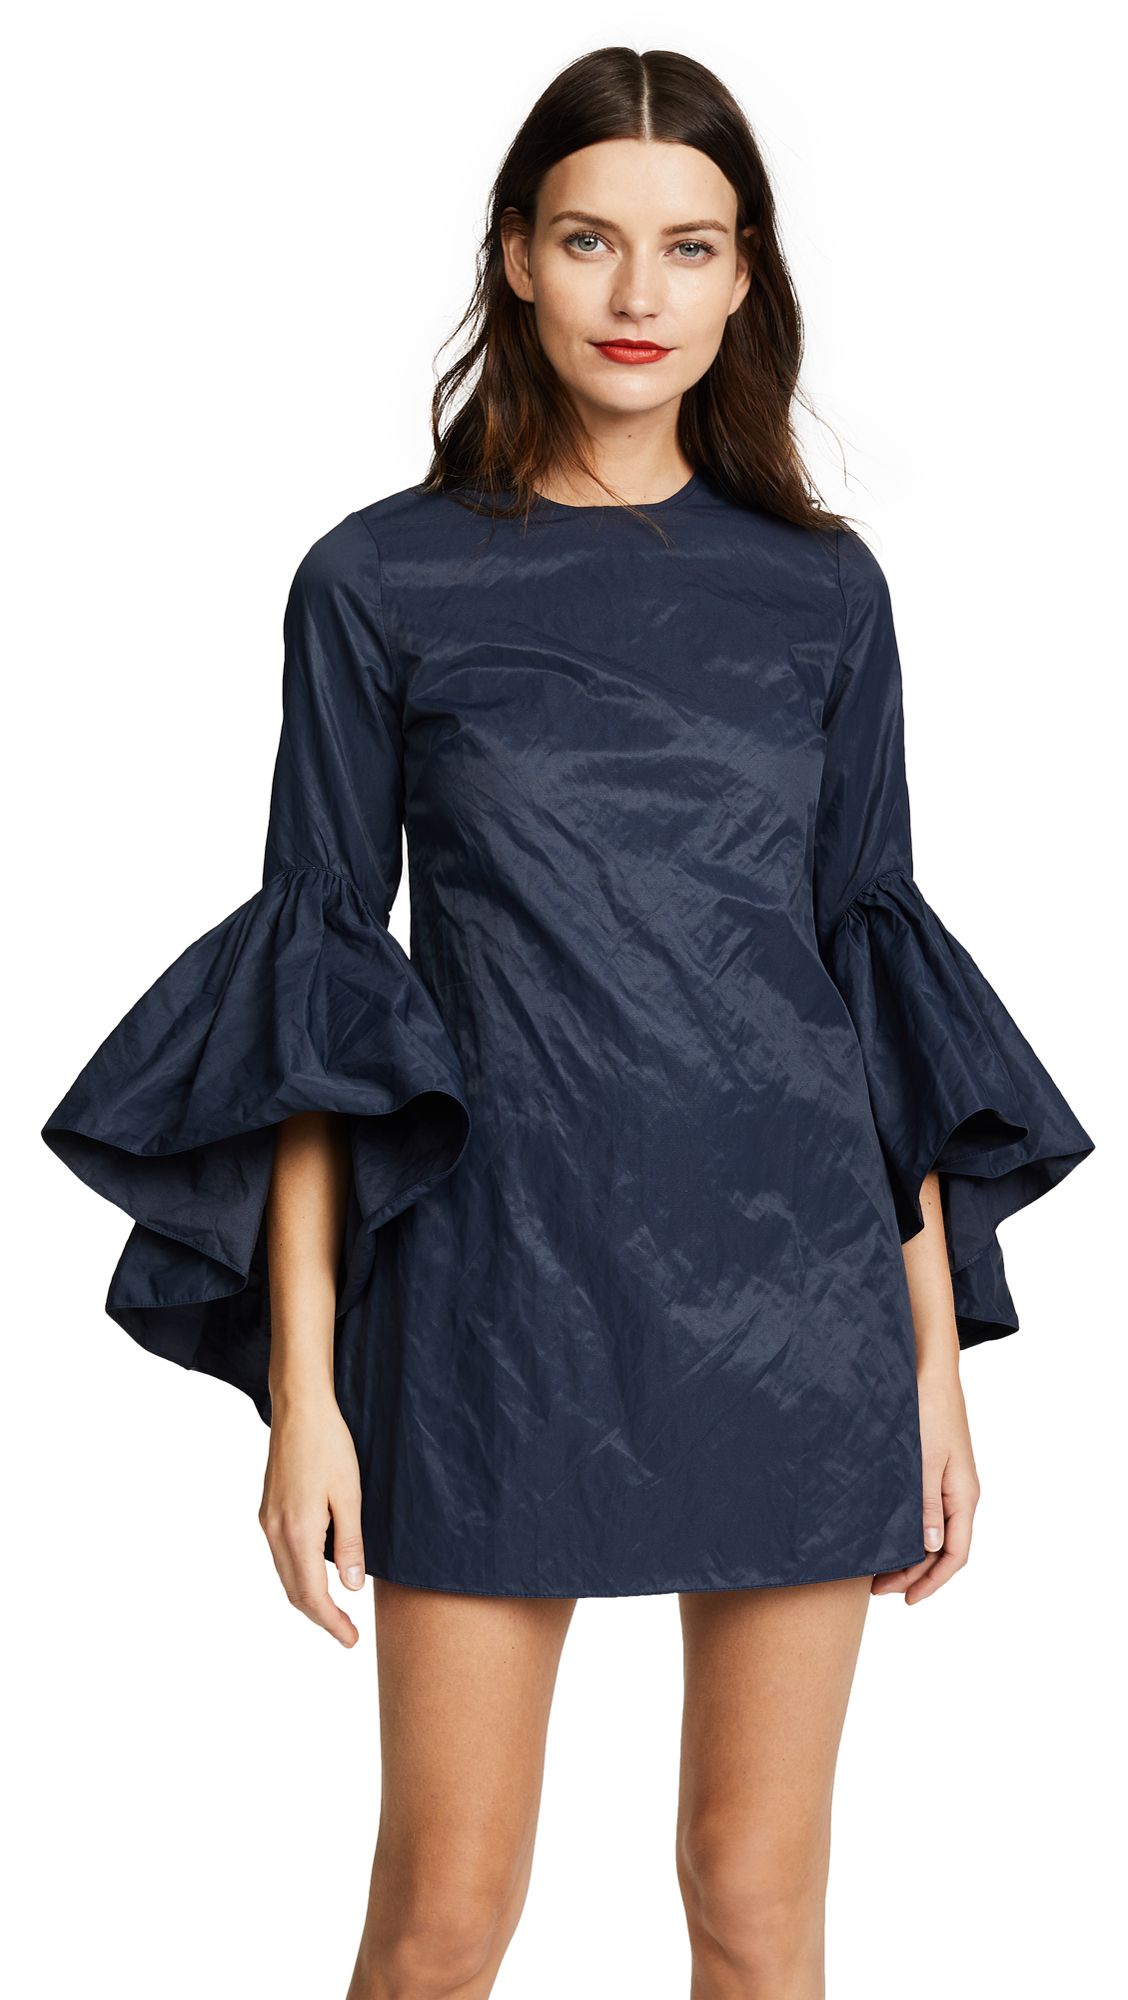 Marques Almeida Oyster Sleeve Dress online sales